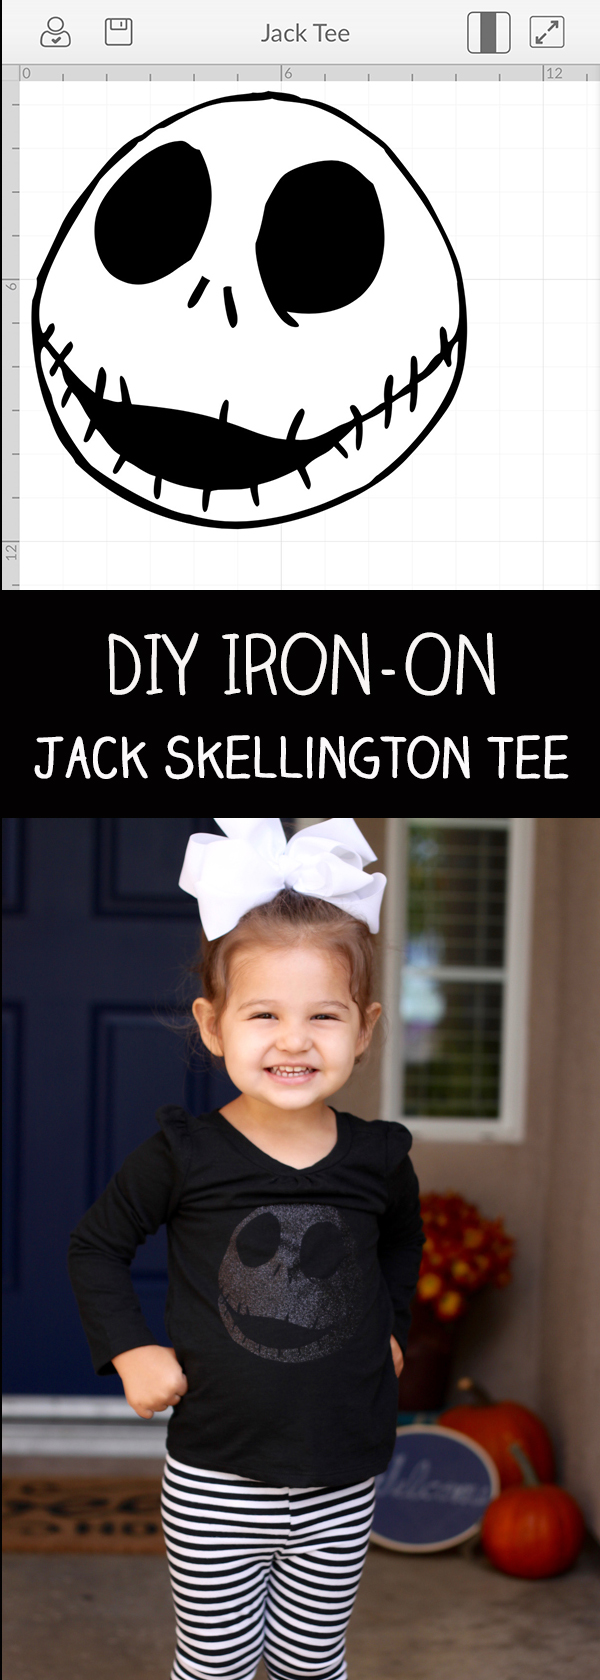 DIY Jack Skellington Iron On Vinyl Tee with Cricut Explore Air 2